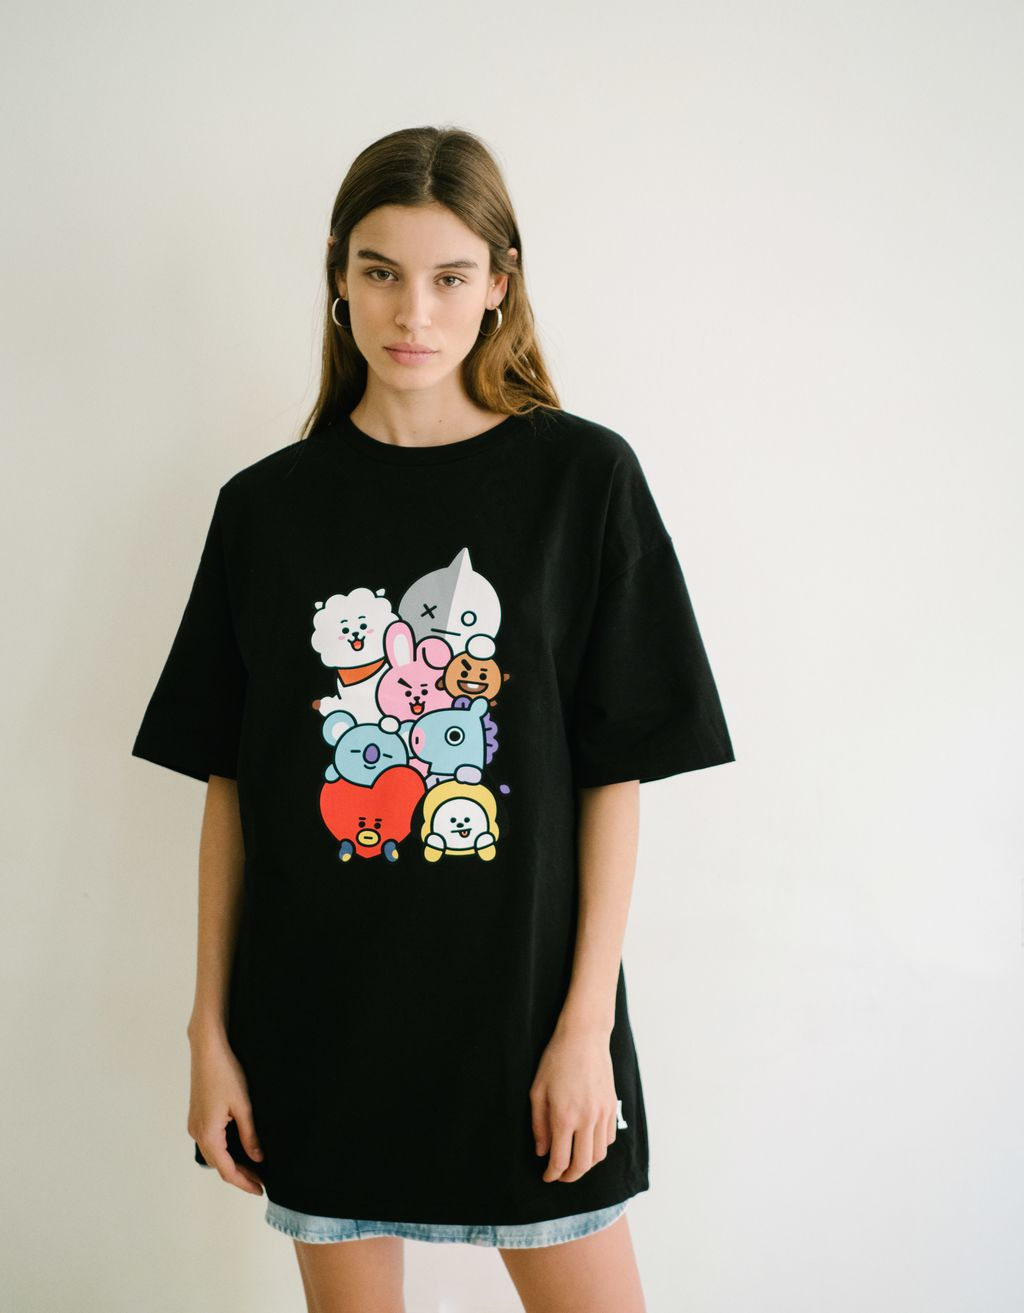 Short BT21 dress